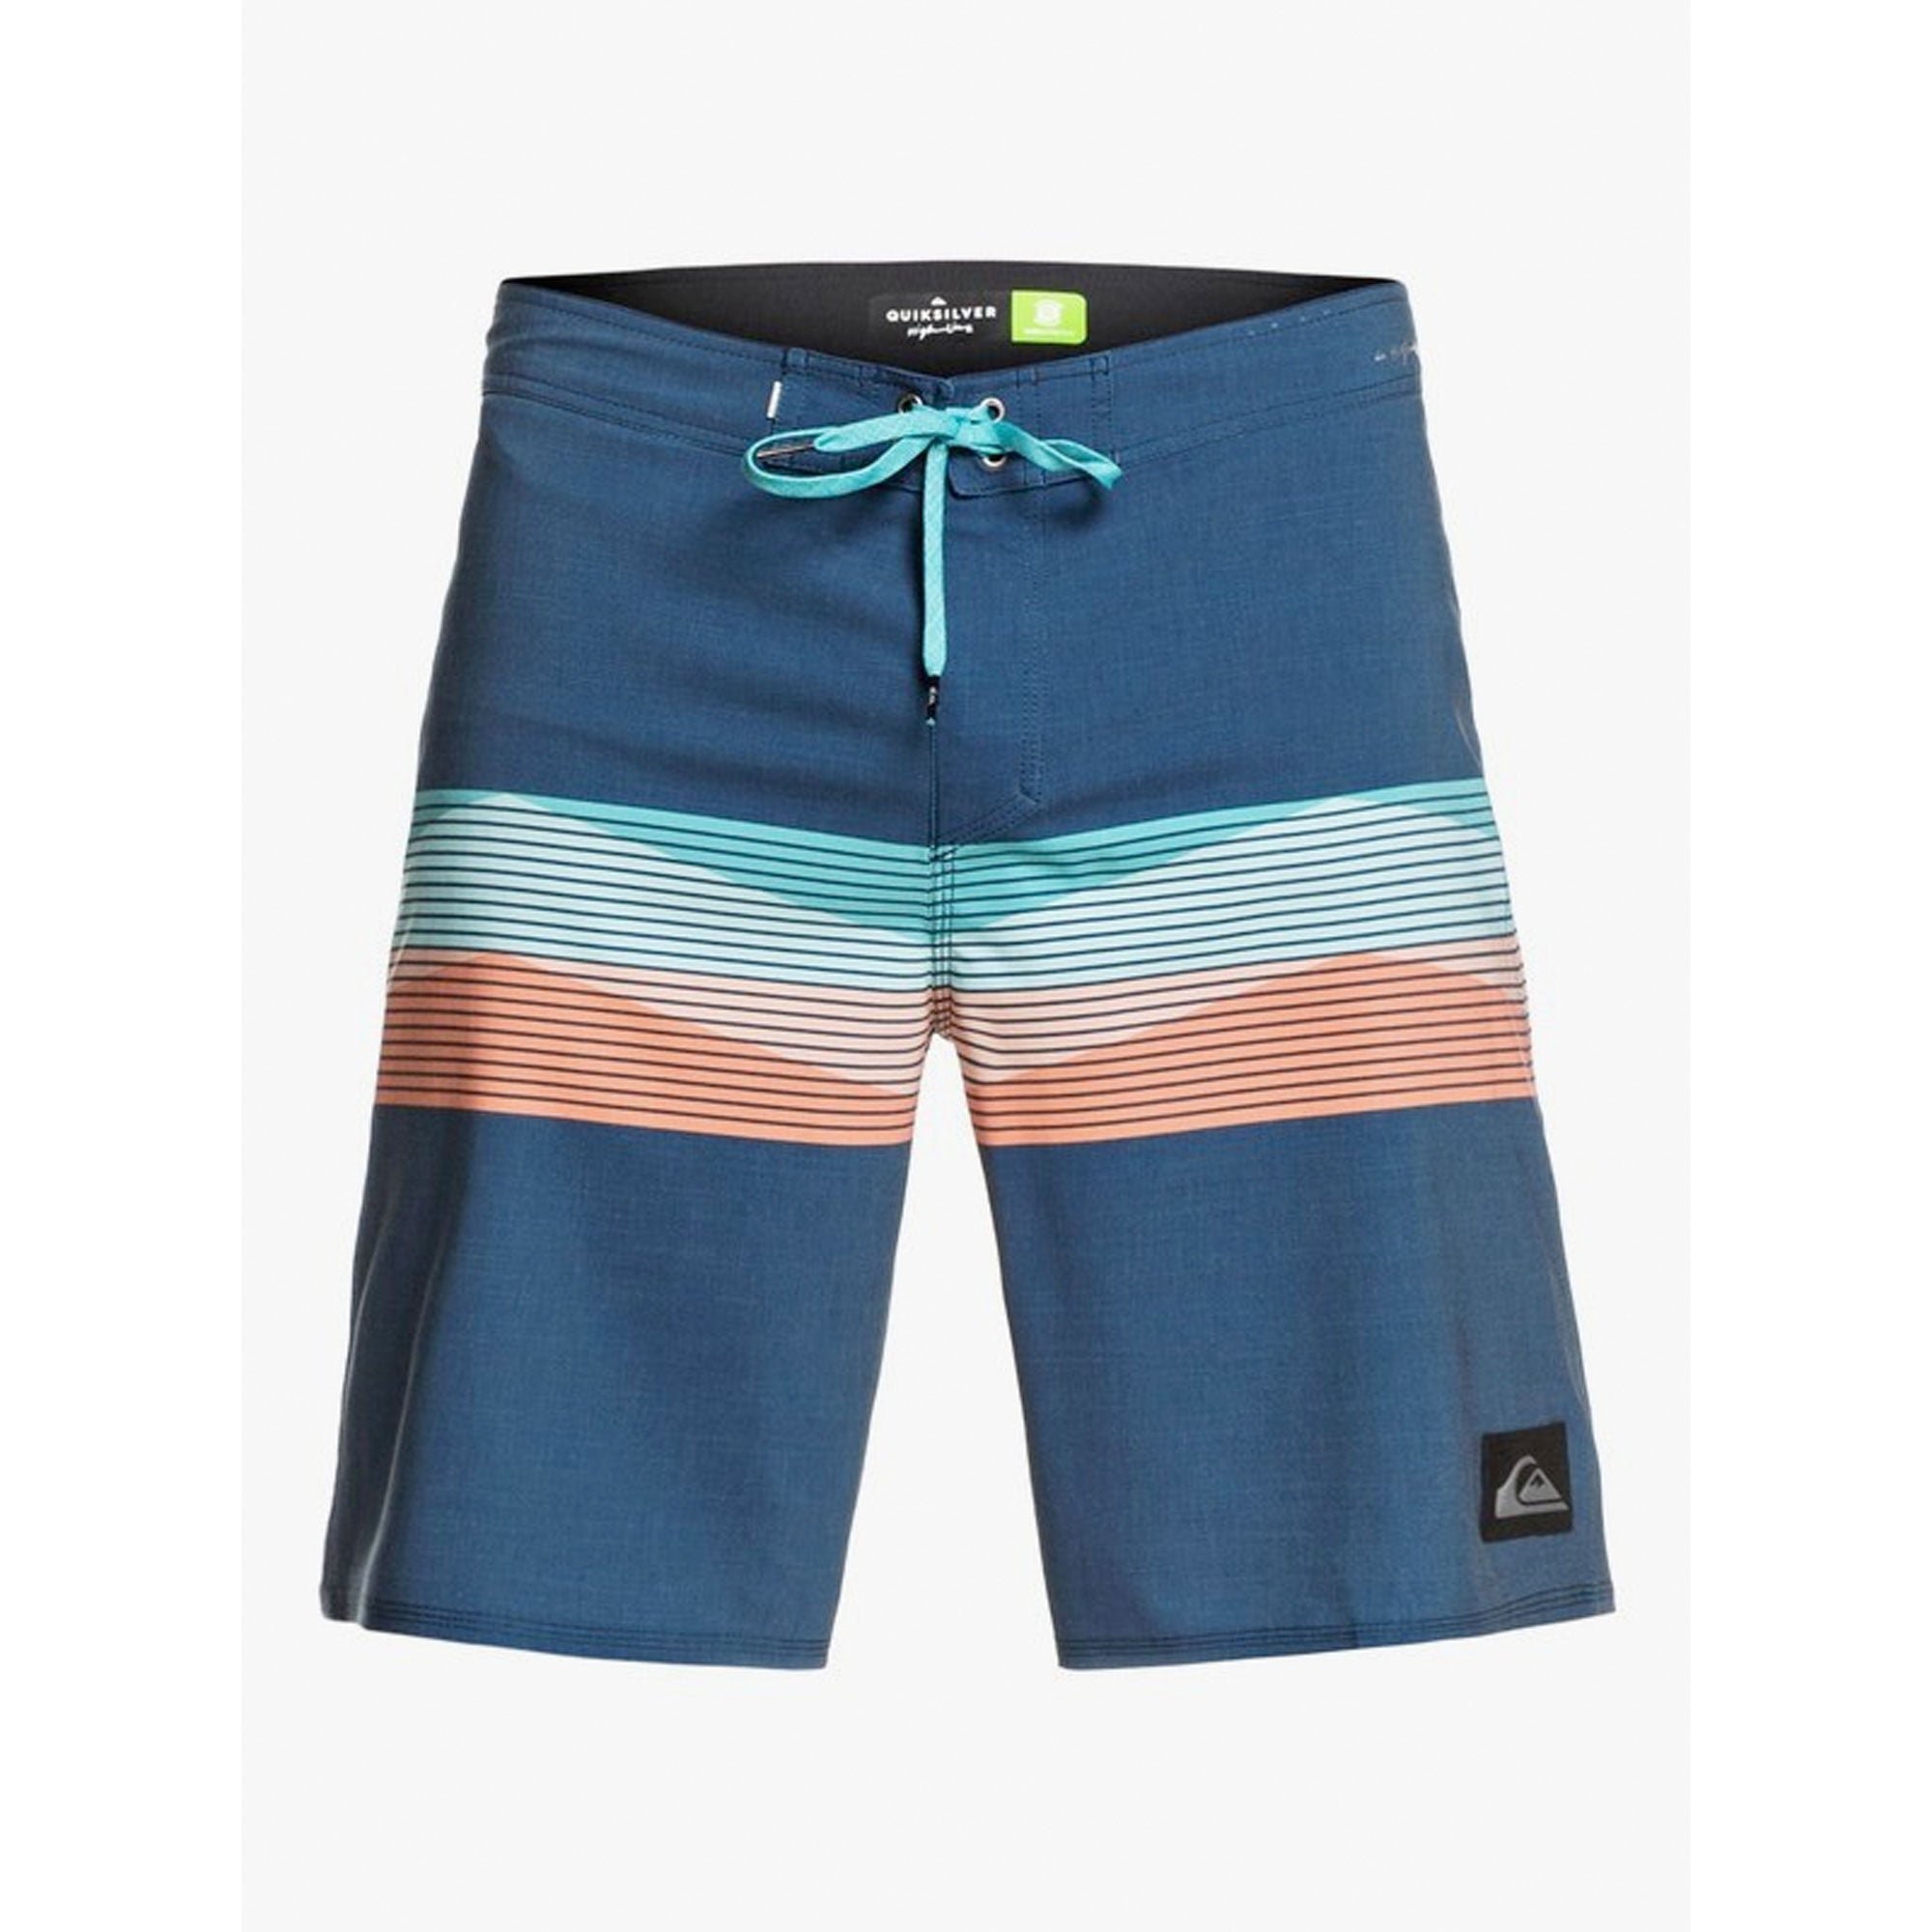 "Quiksilver Highline Seasons Men's 20"" Boardshort"